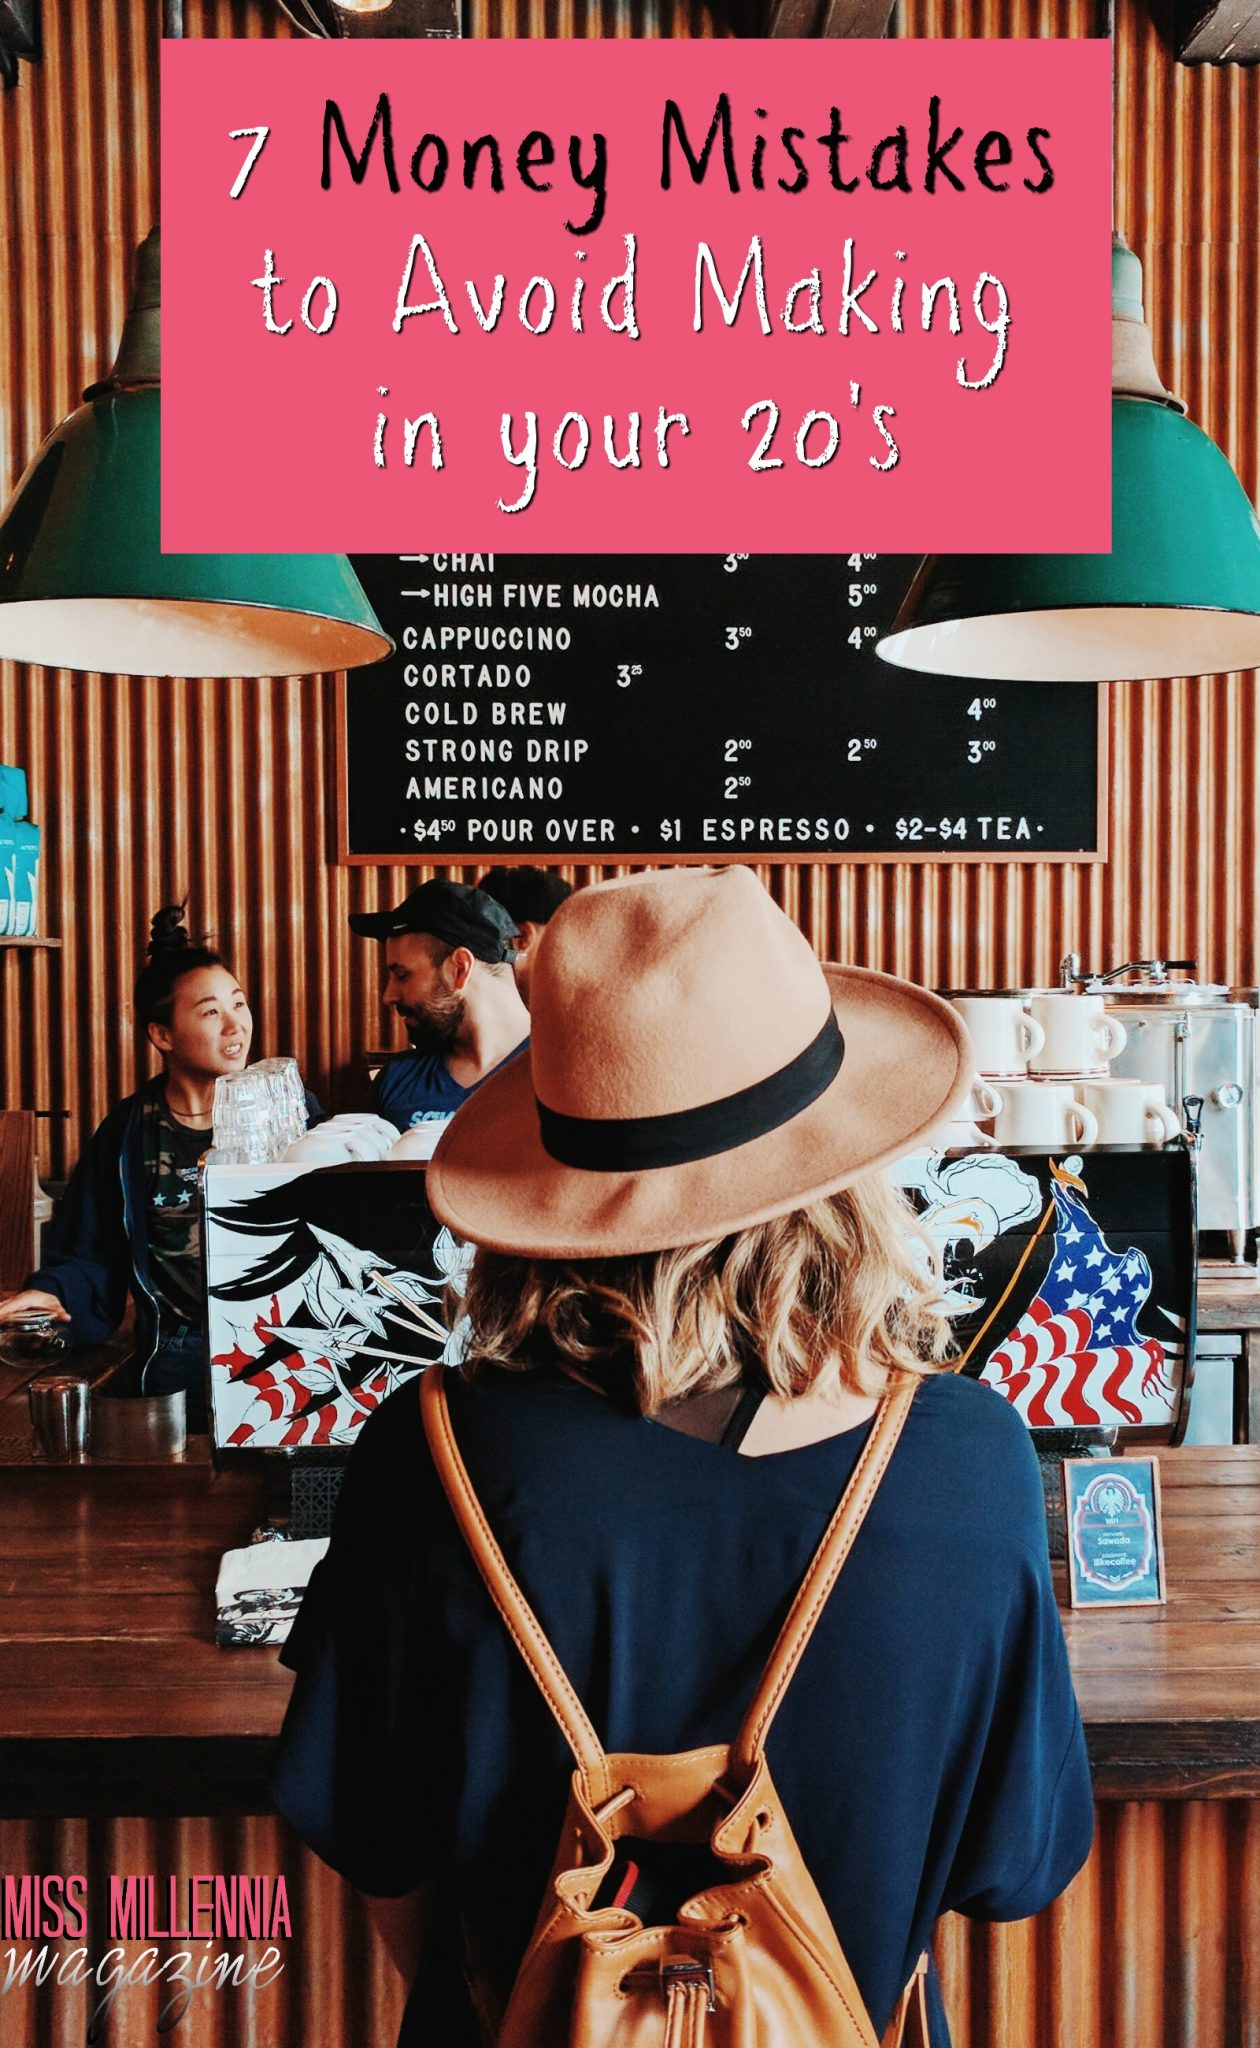 7 Money Mistakes to Avoid Making in your 20's